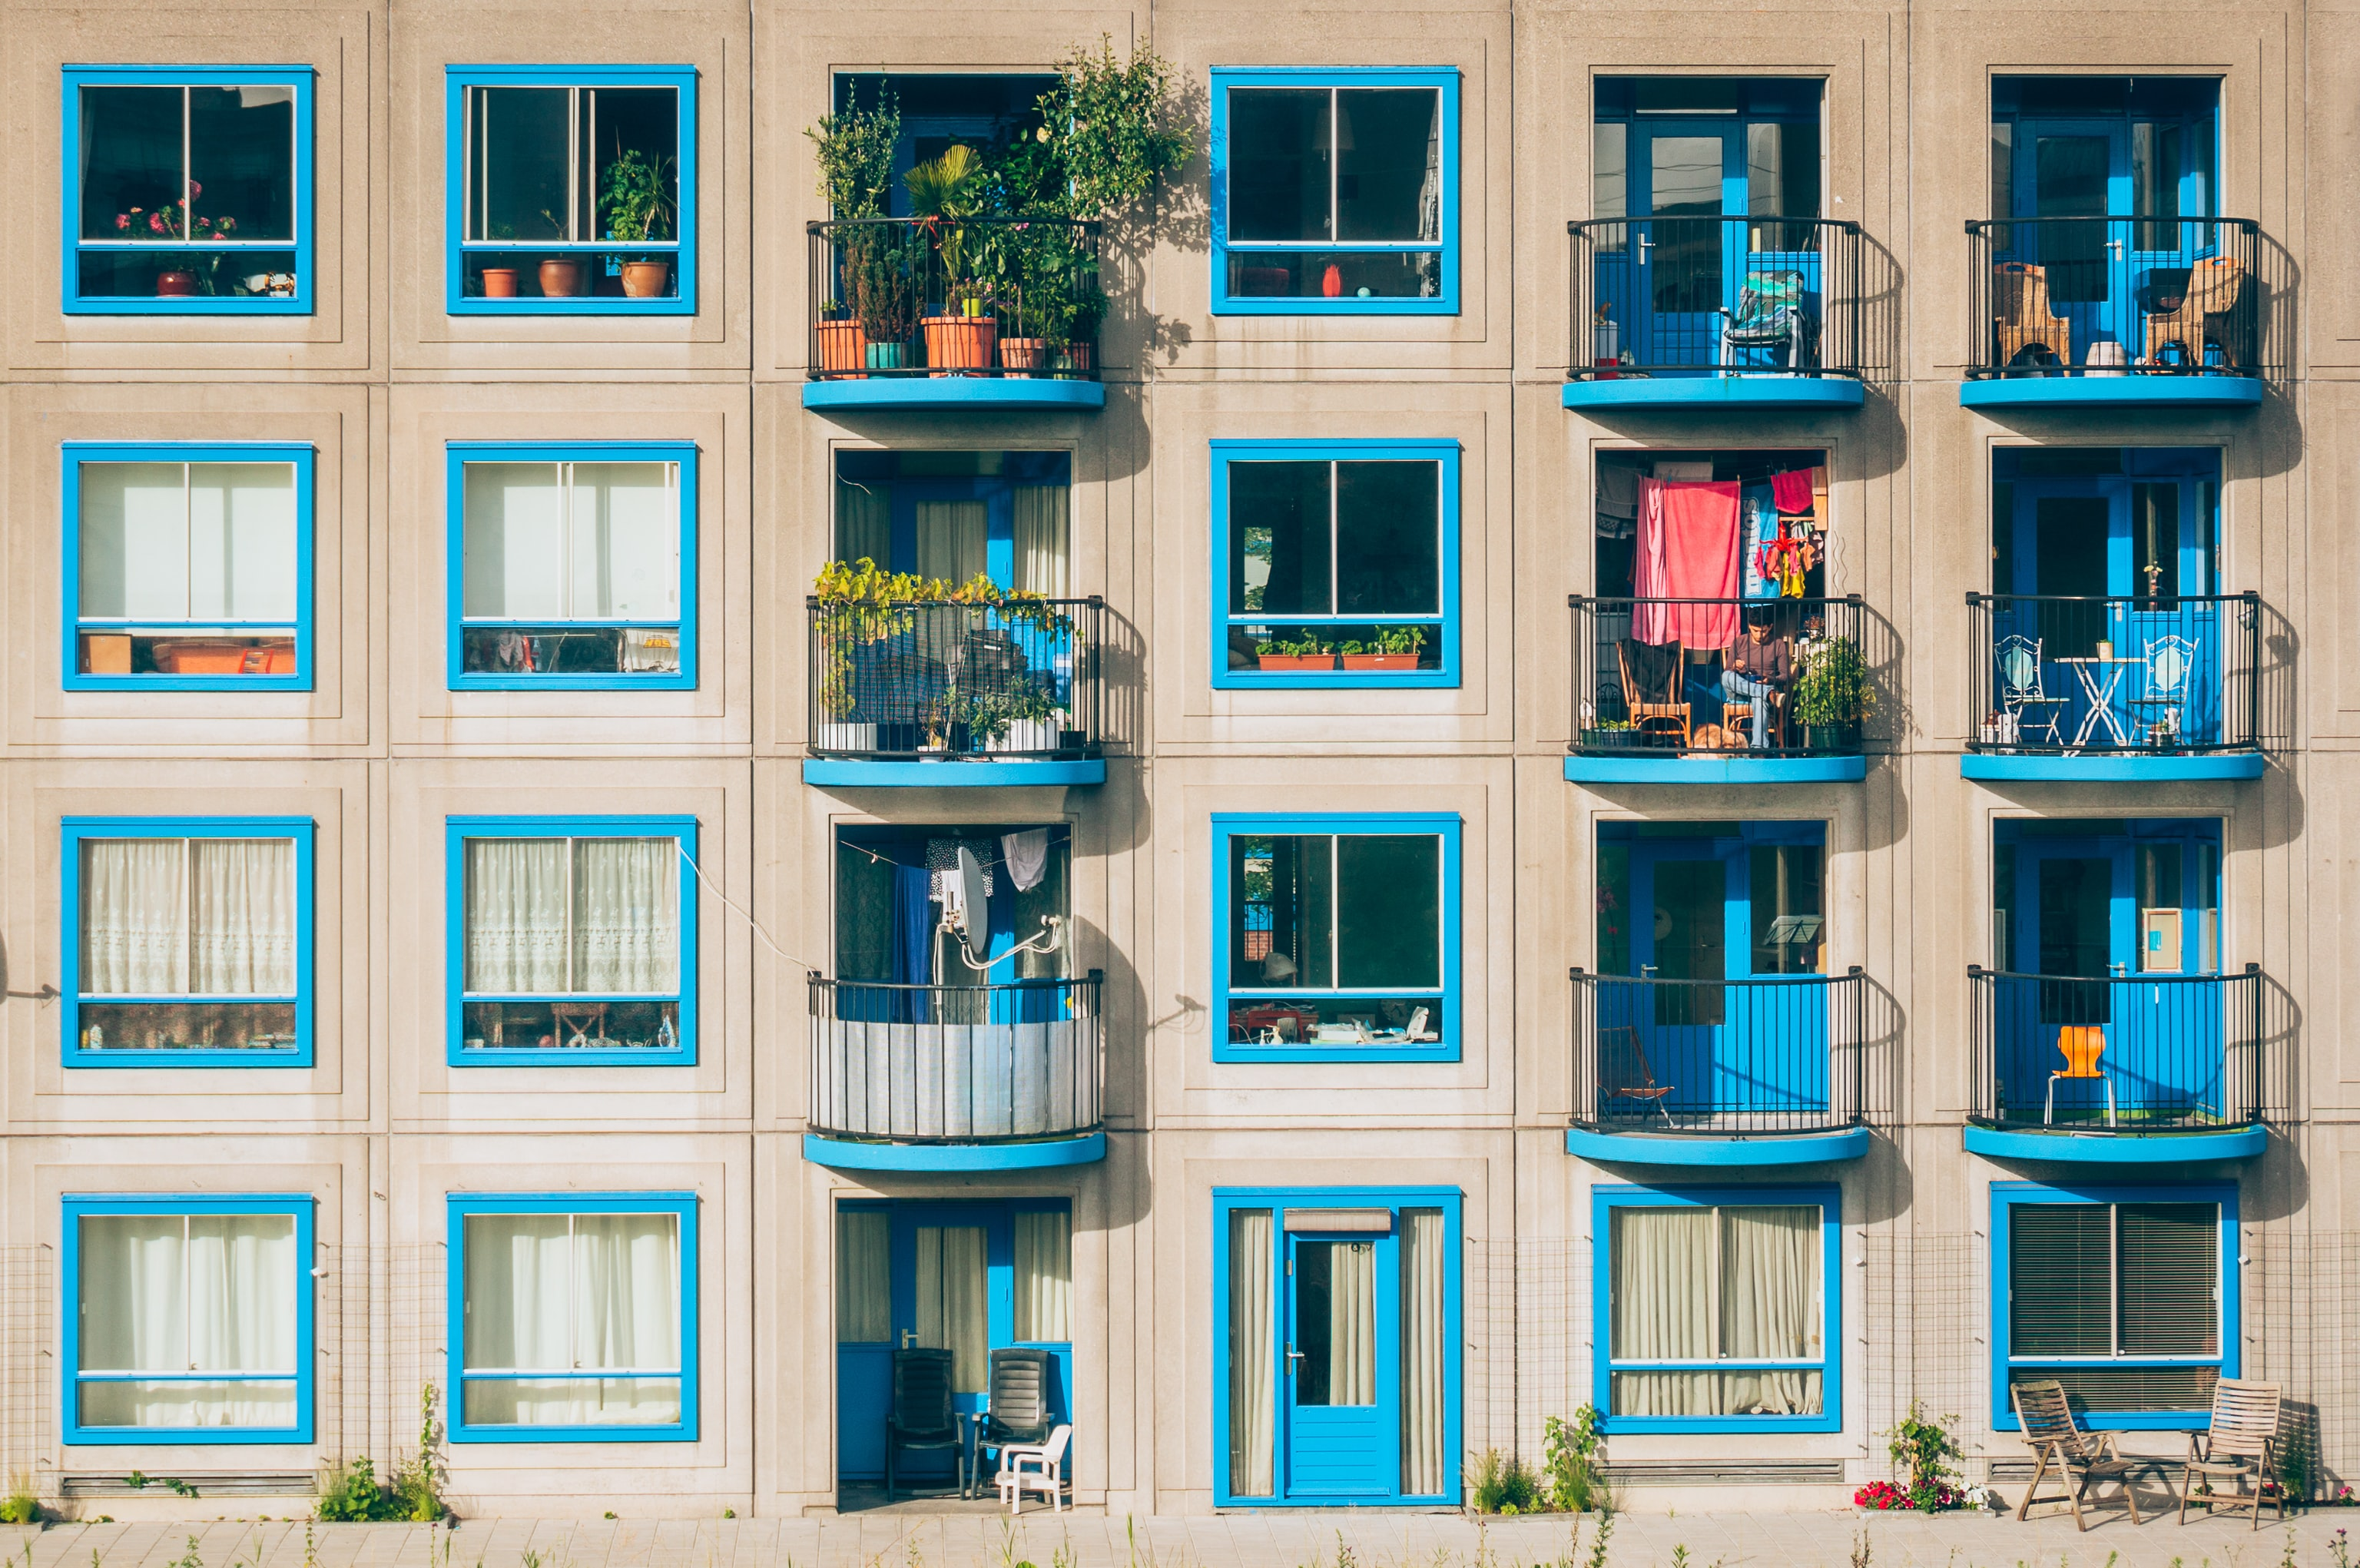 An apartment building with blue windows and balconies filled with plants in Amsterdam, Bullewijk